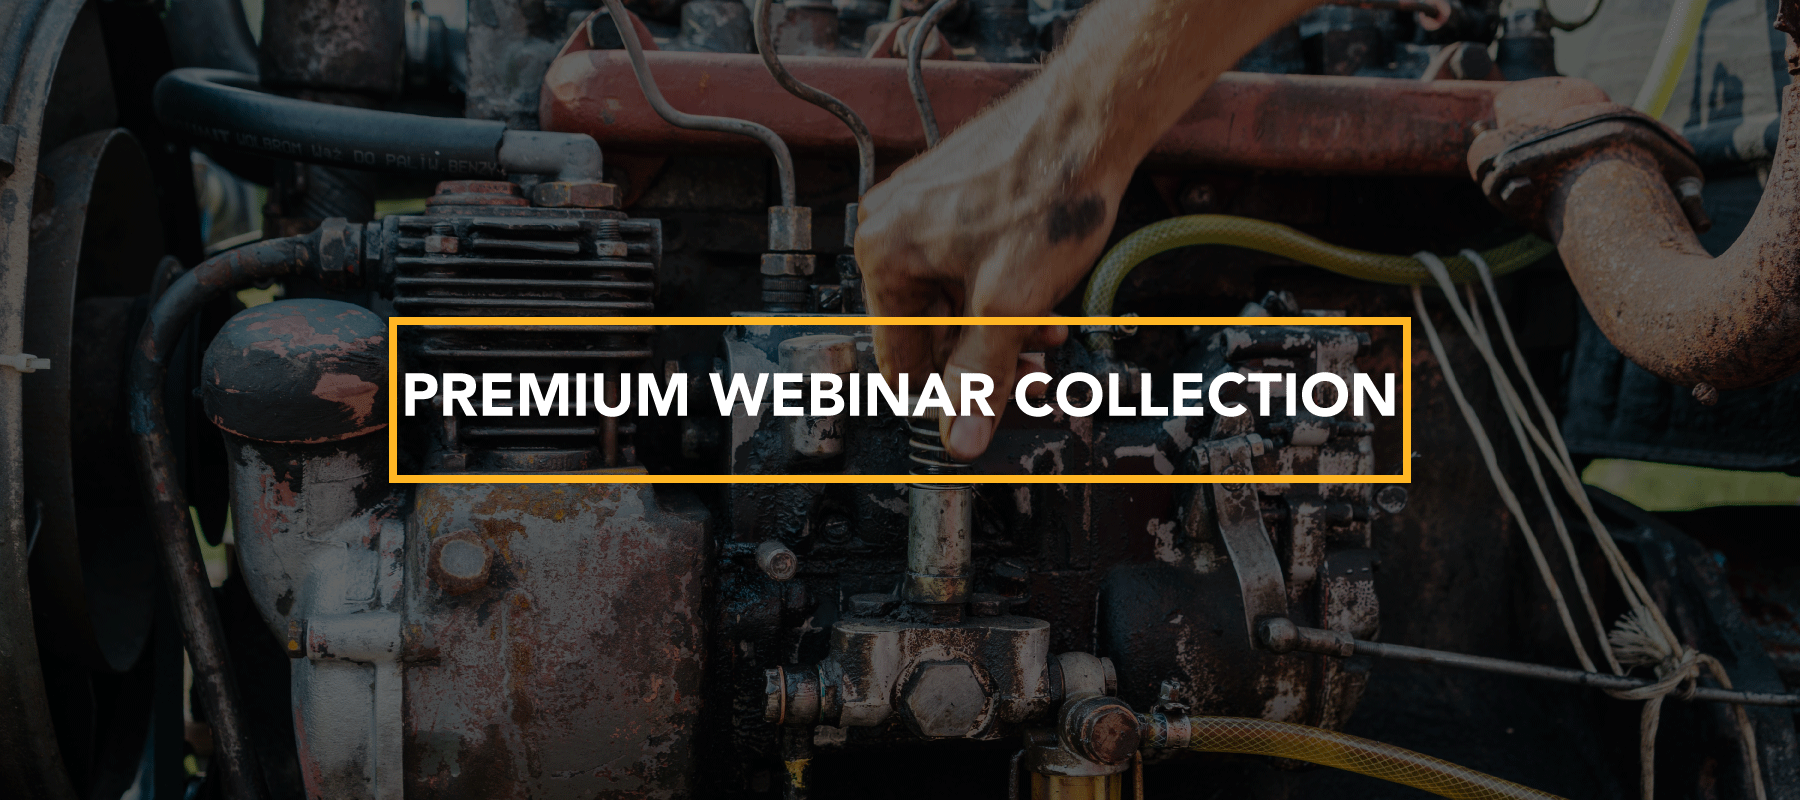 Premium Webinar Collection